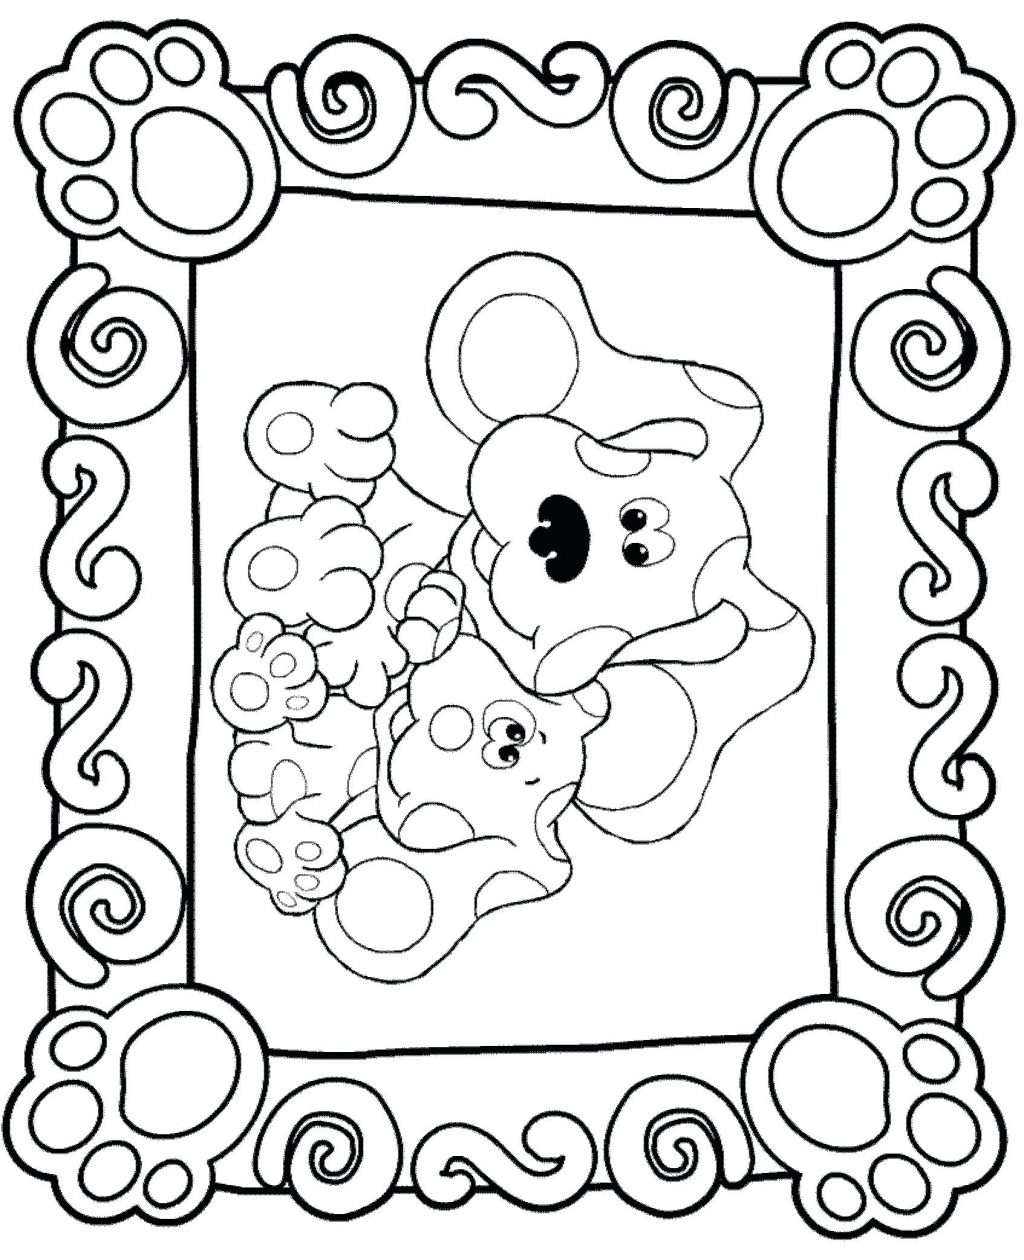 Blues Clues Printable Coloring Pages At Getcolorings